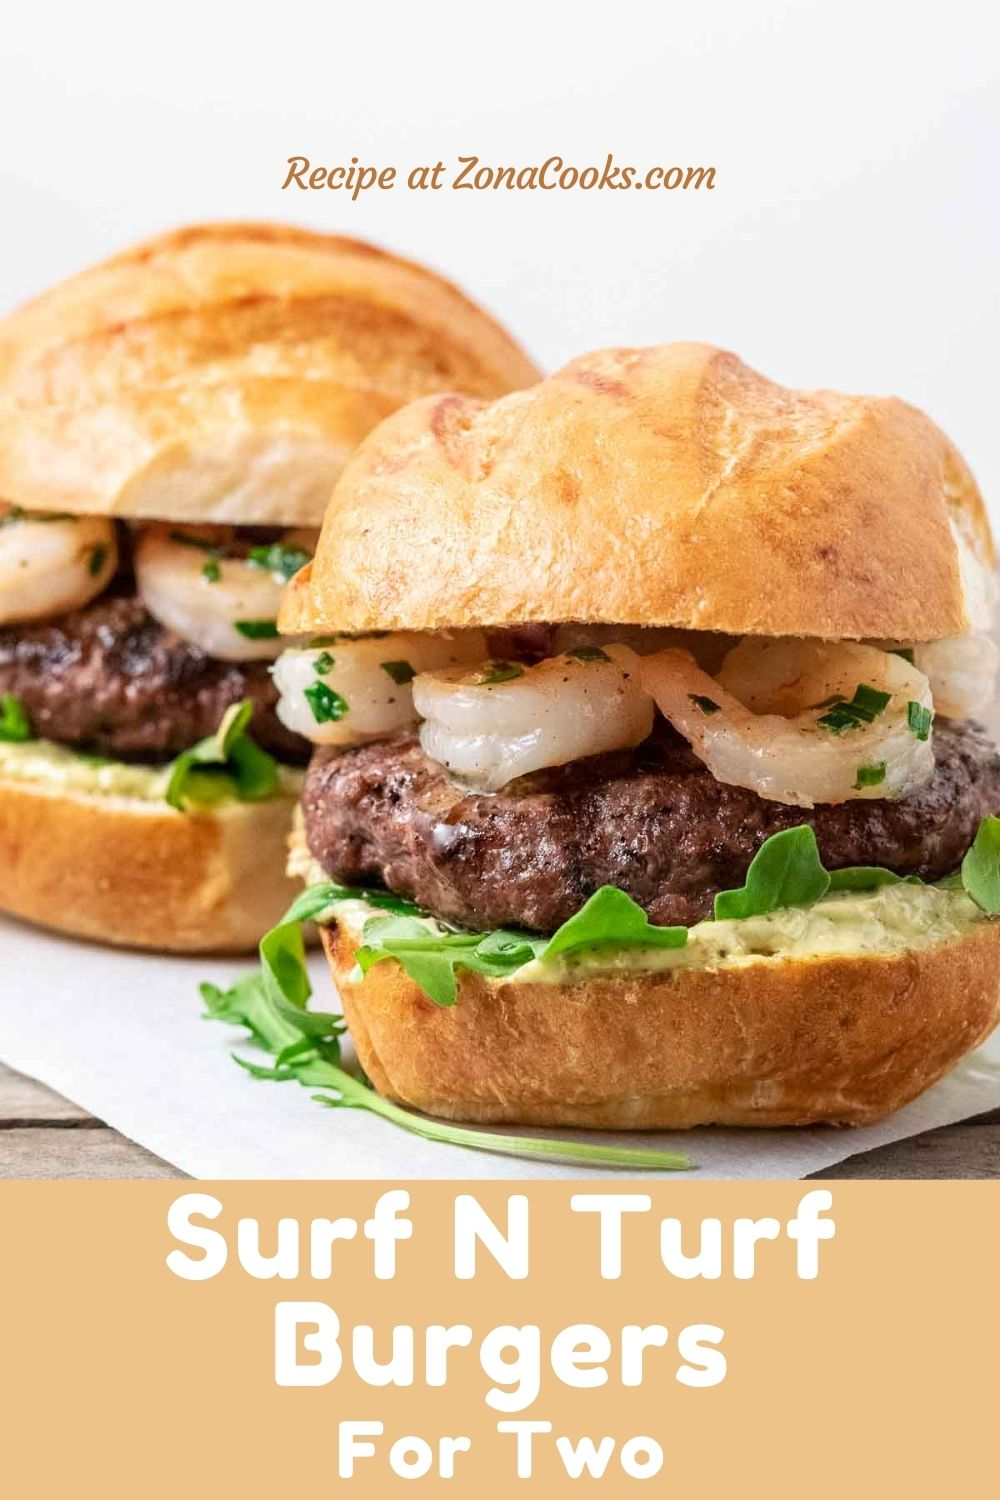 two burger buns filled with beef patties, arugula, pesto mayo, and seared shrimp and text reading recipe at zonacooks.com surf n turf burgers for two.